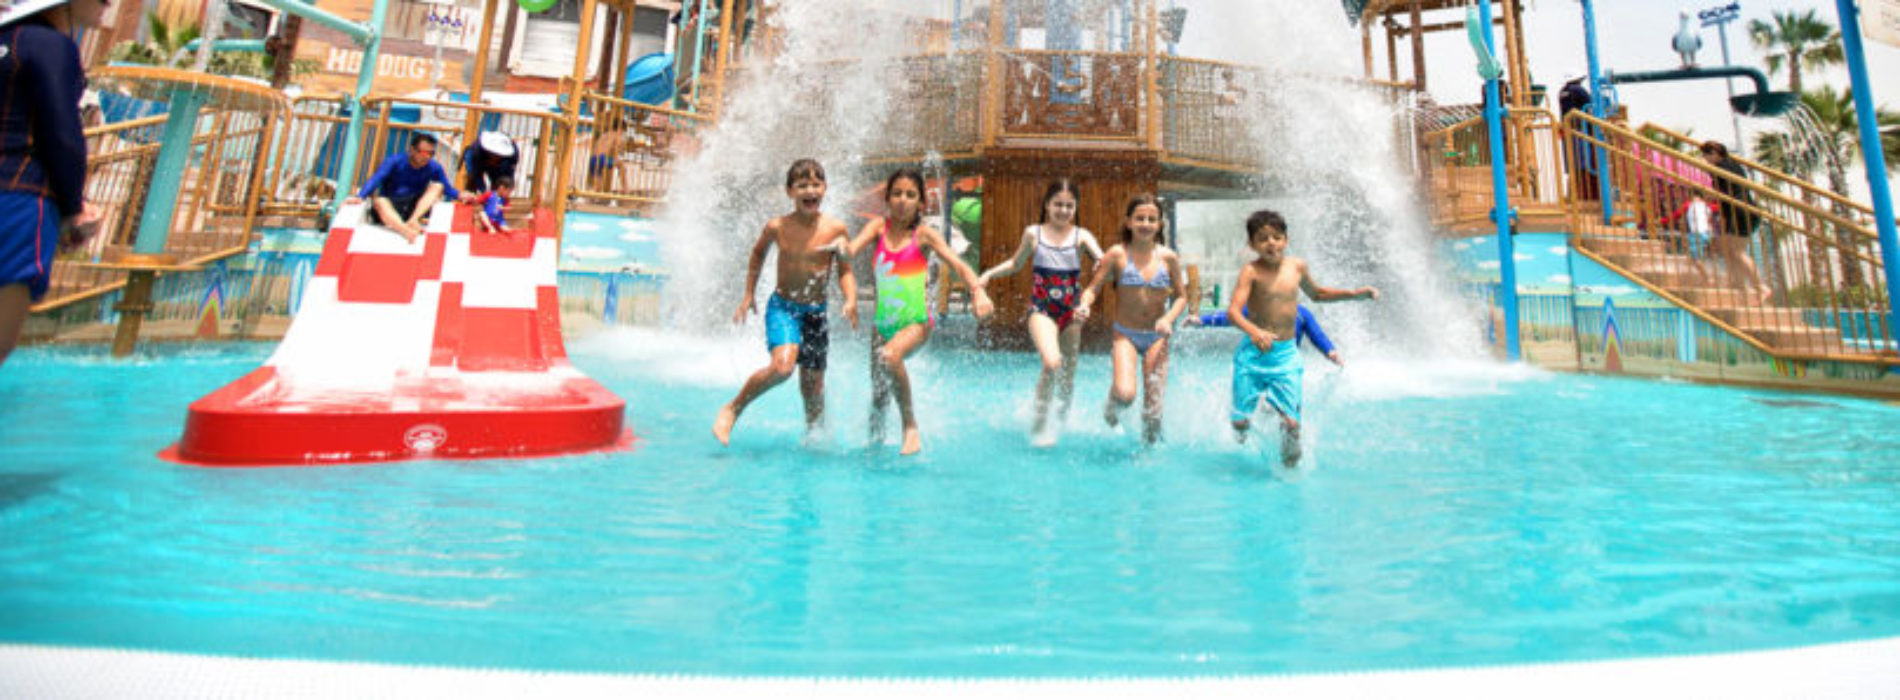 Enter this Dubai waterpark for just AED1 this May!